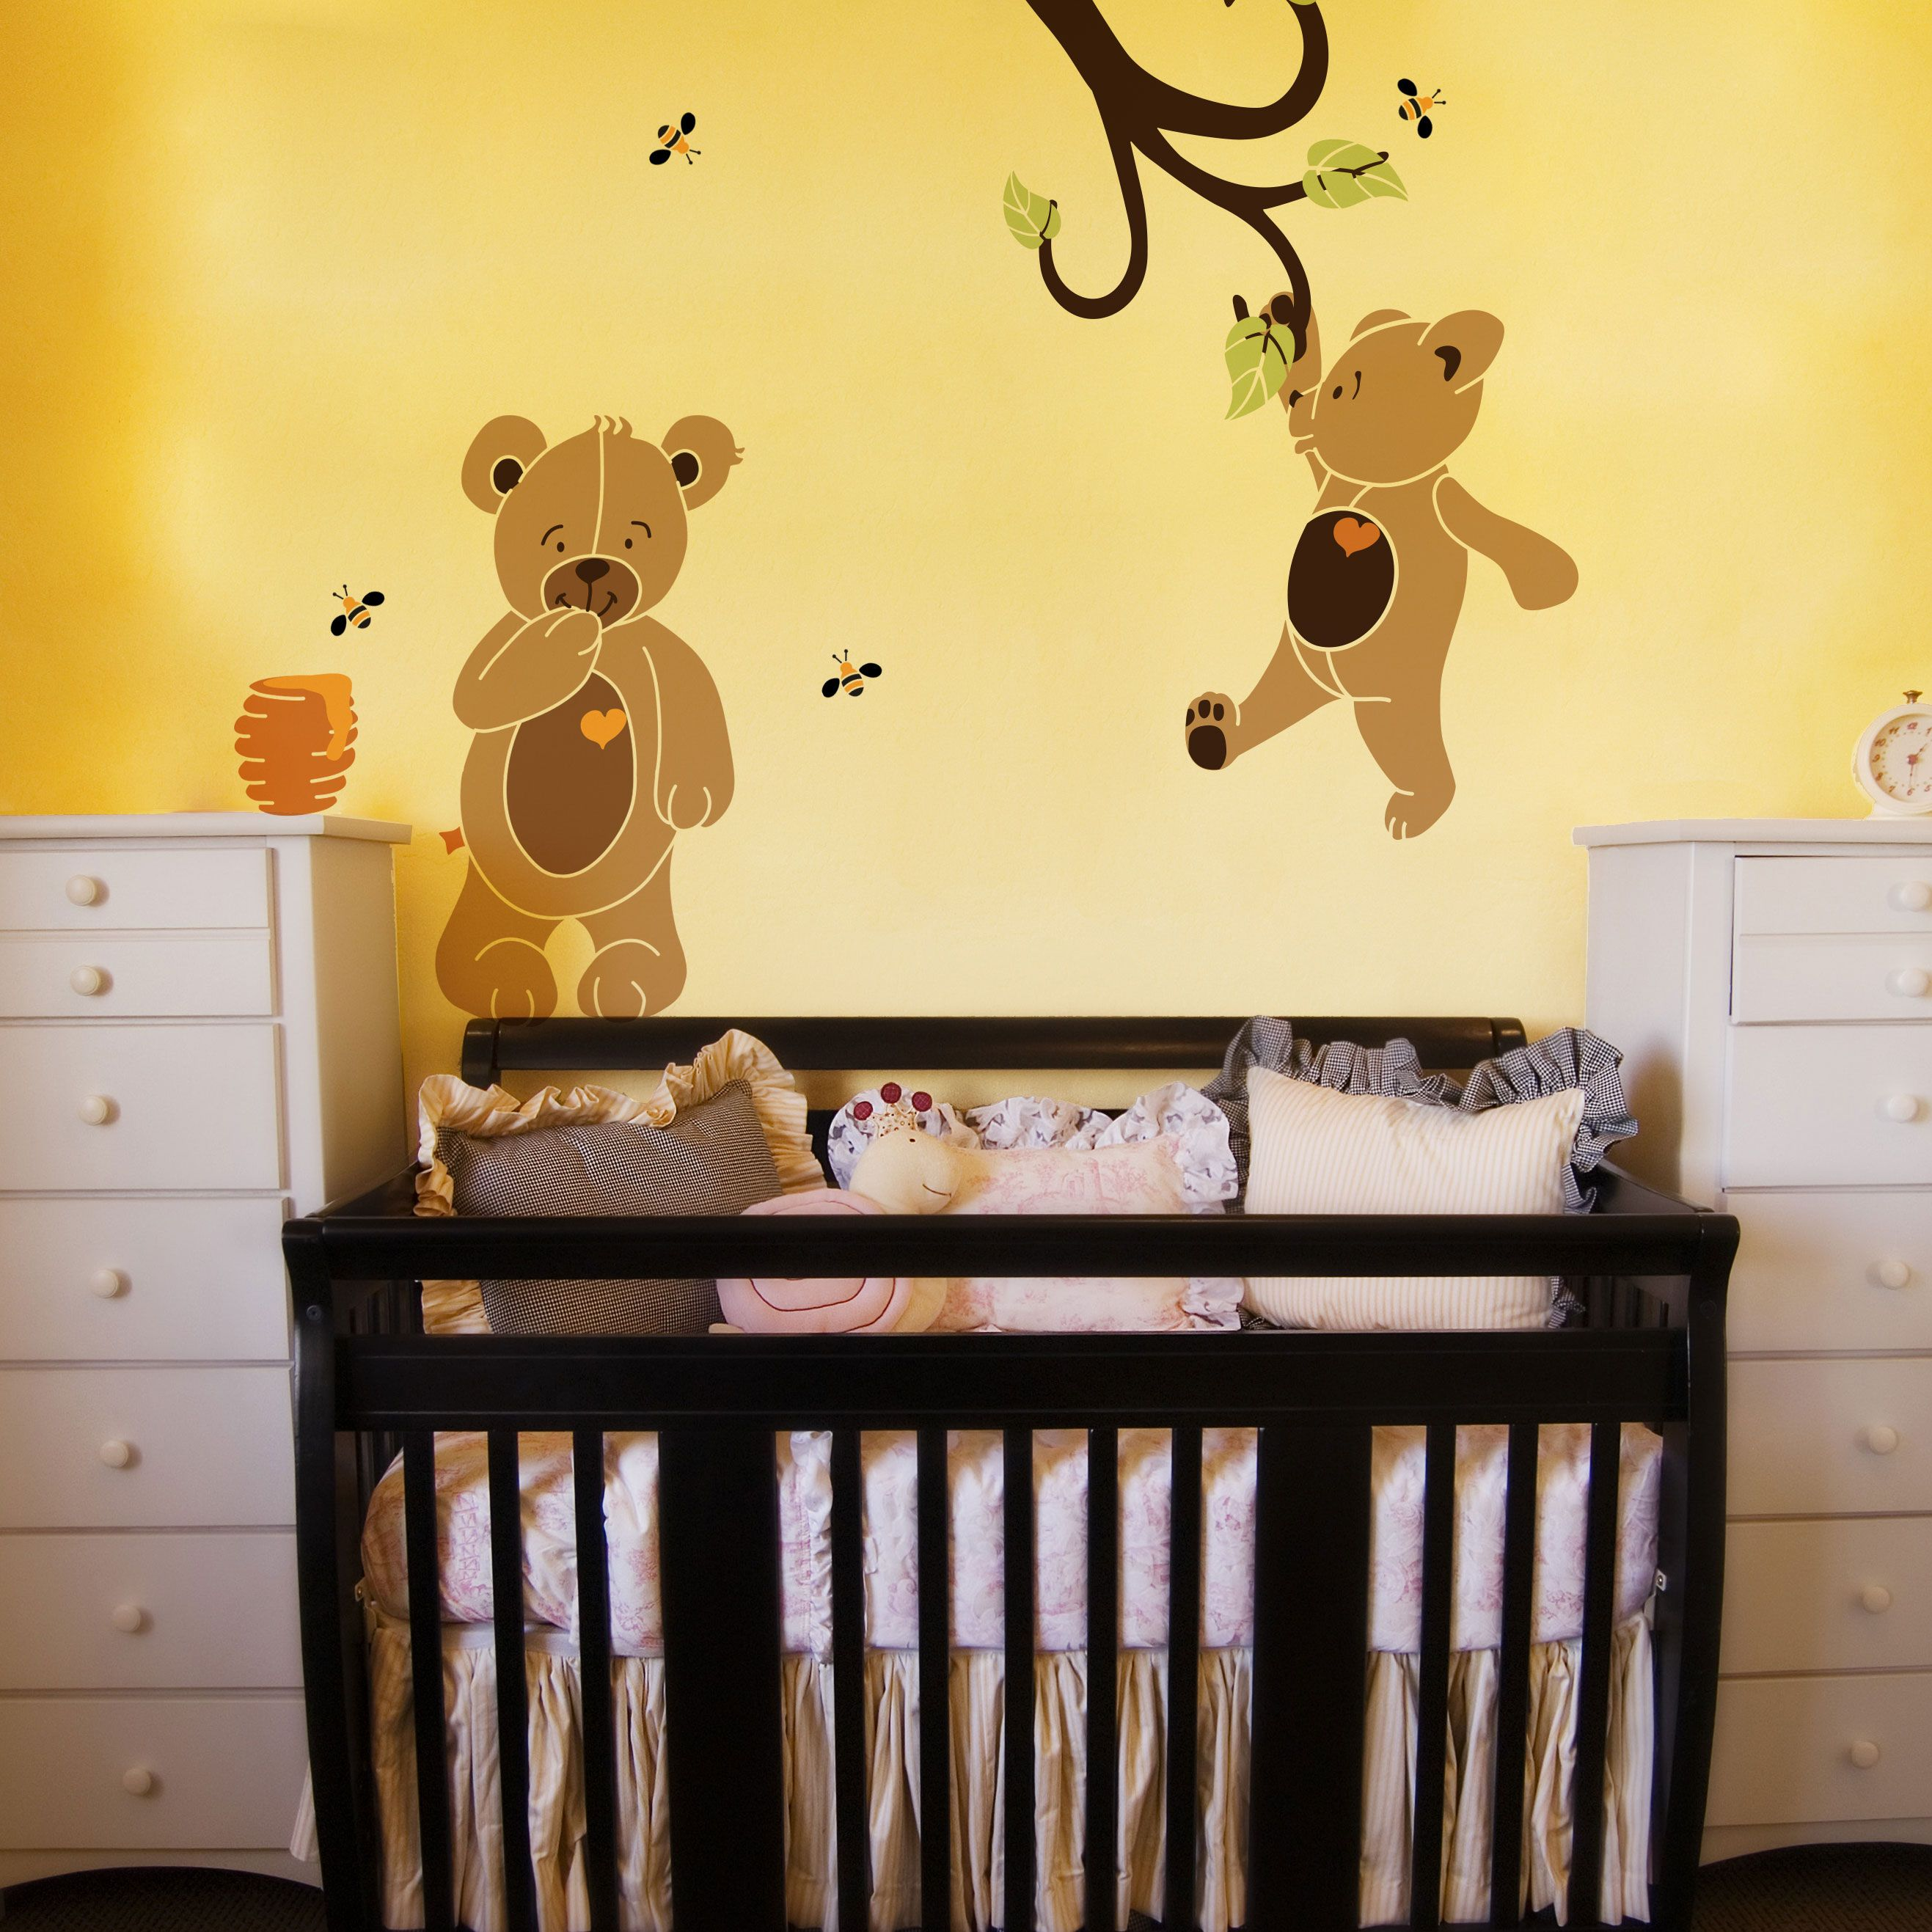 teddy bear wall stencil kit wall murals teddy bear and stenciling teddy bear stencils for painting teddy bear wall mural on baby nursery